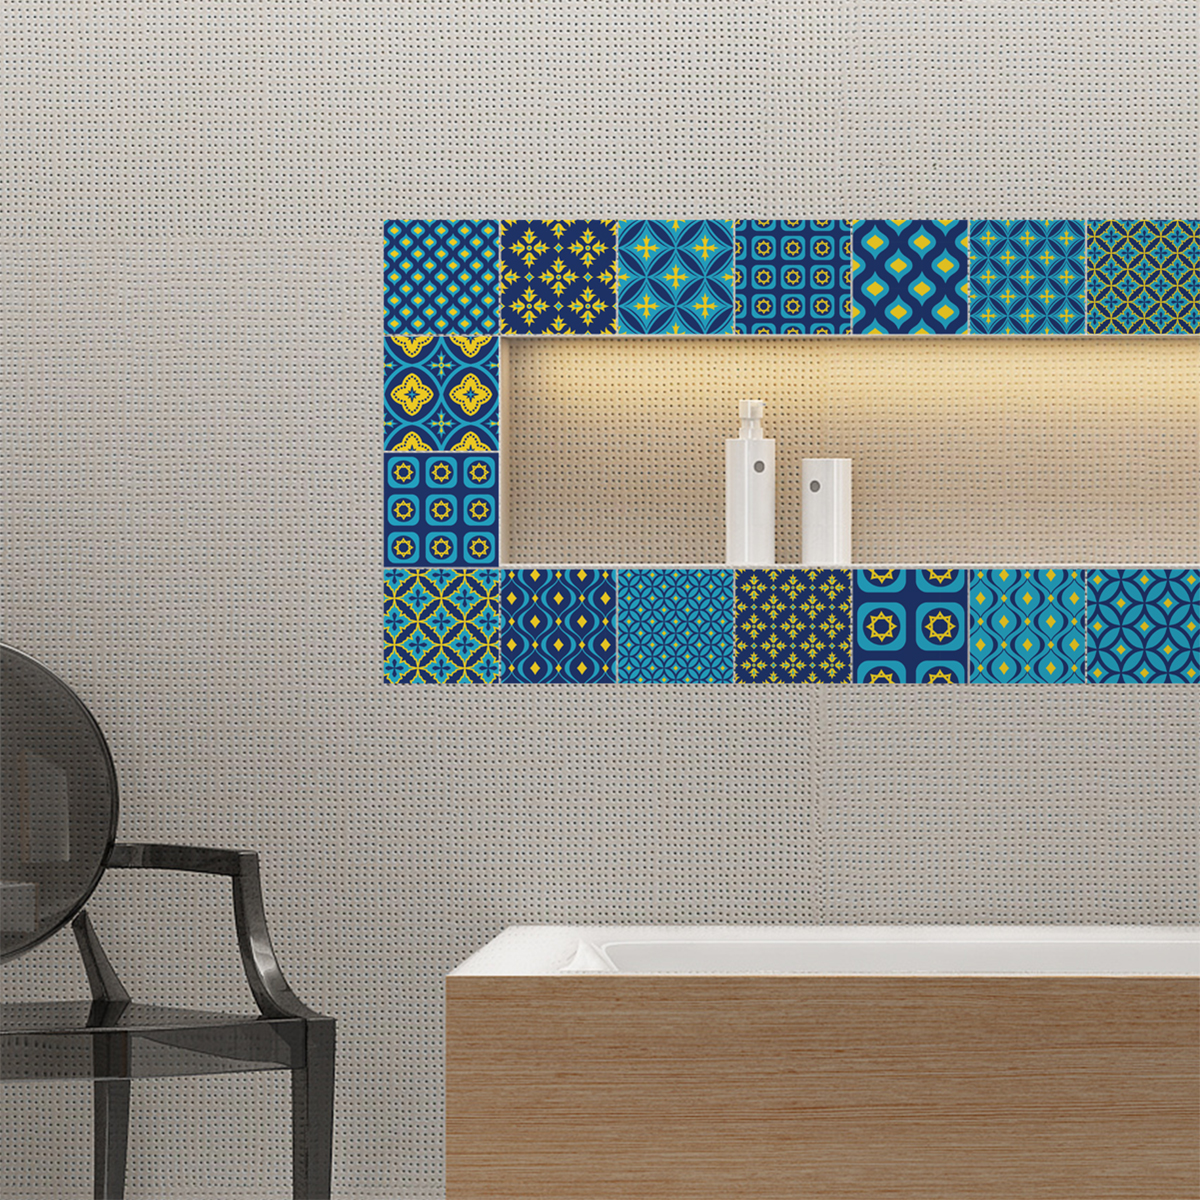 16 stickers carreaux de ciment scandinave mika salle de bain et wc salle de bain ambiance. Black Bedroom Furniture Sets. Home Design Ideas